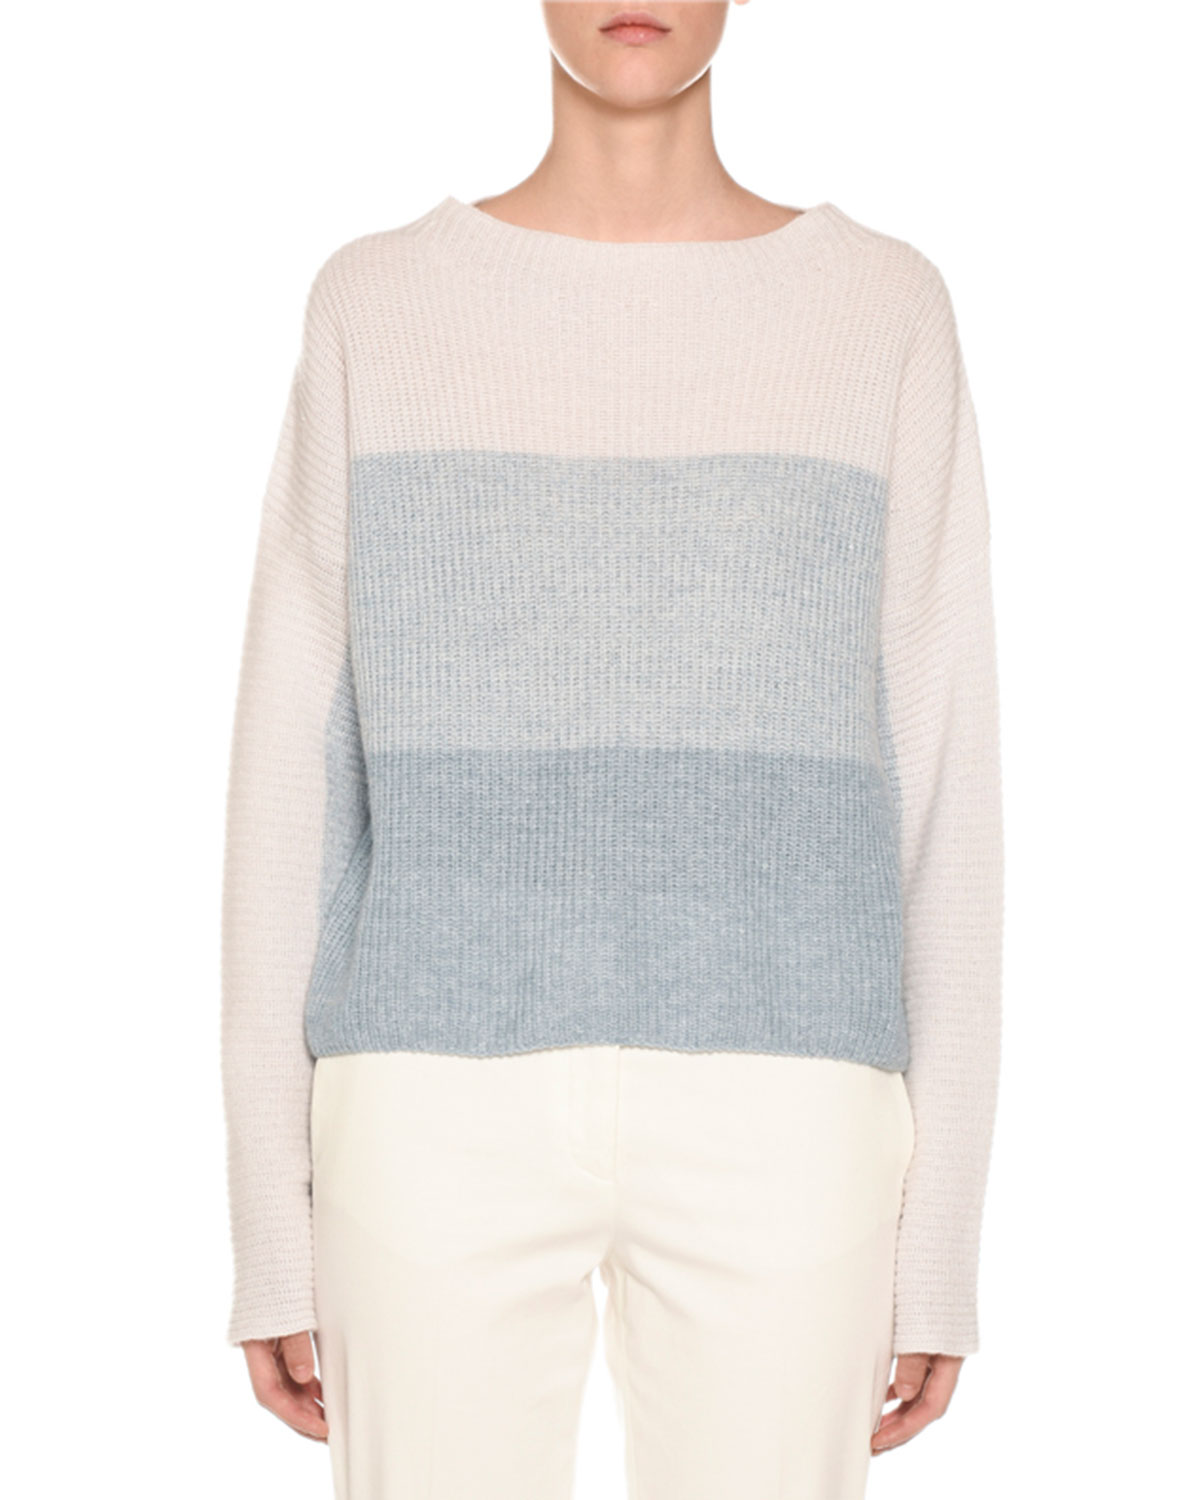 AGNONA Degrade Colorblocked Ribbed Sweater in Blue/White